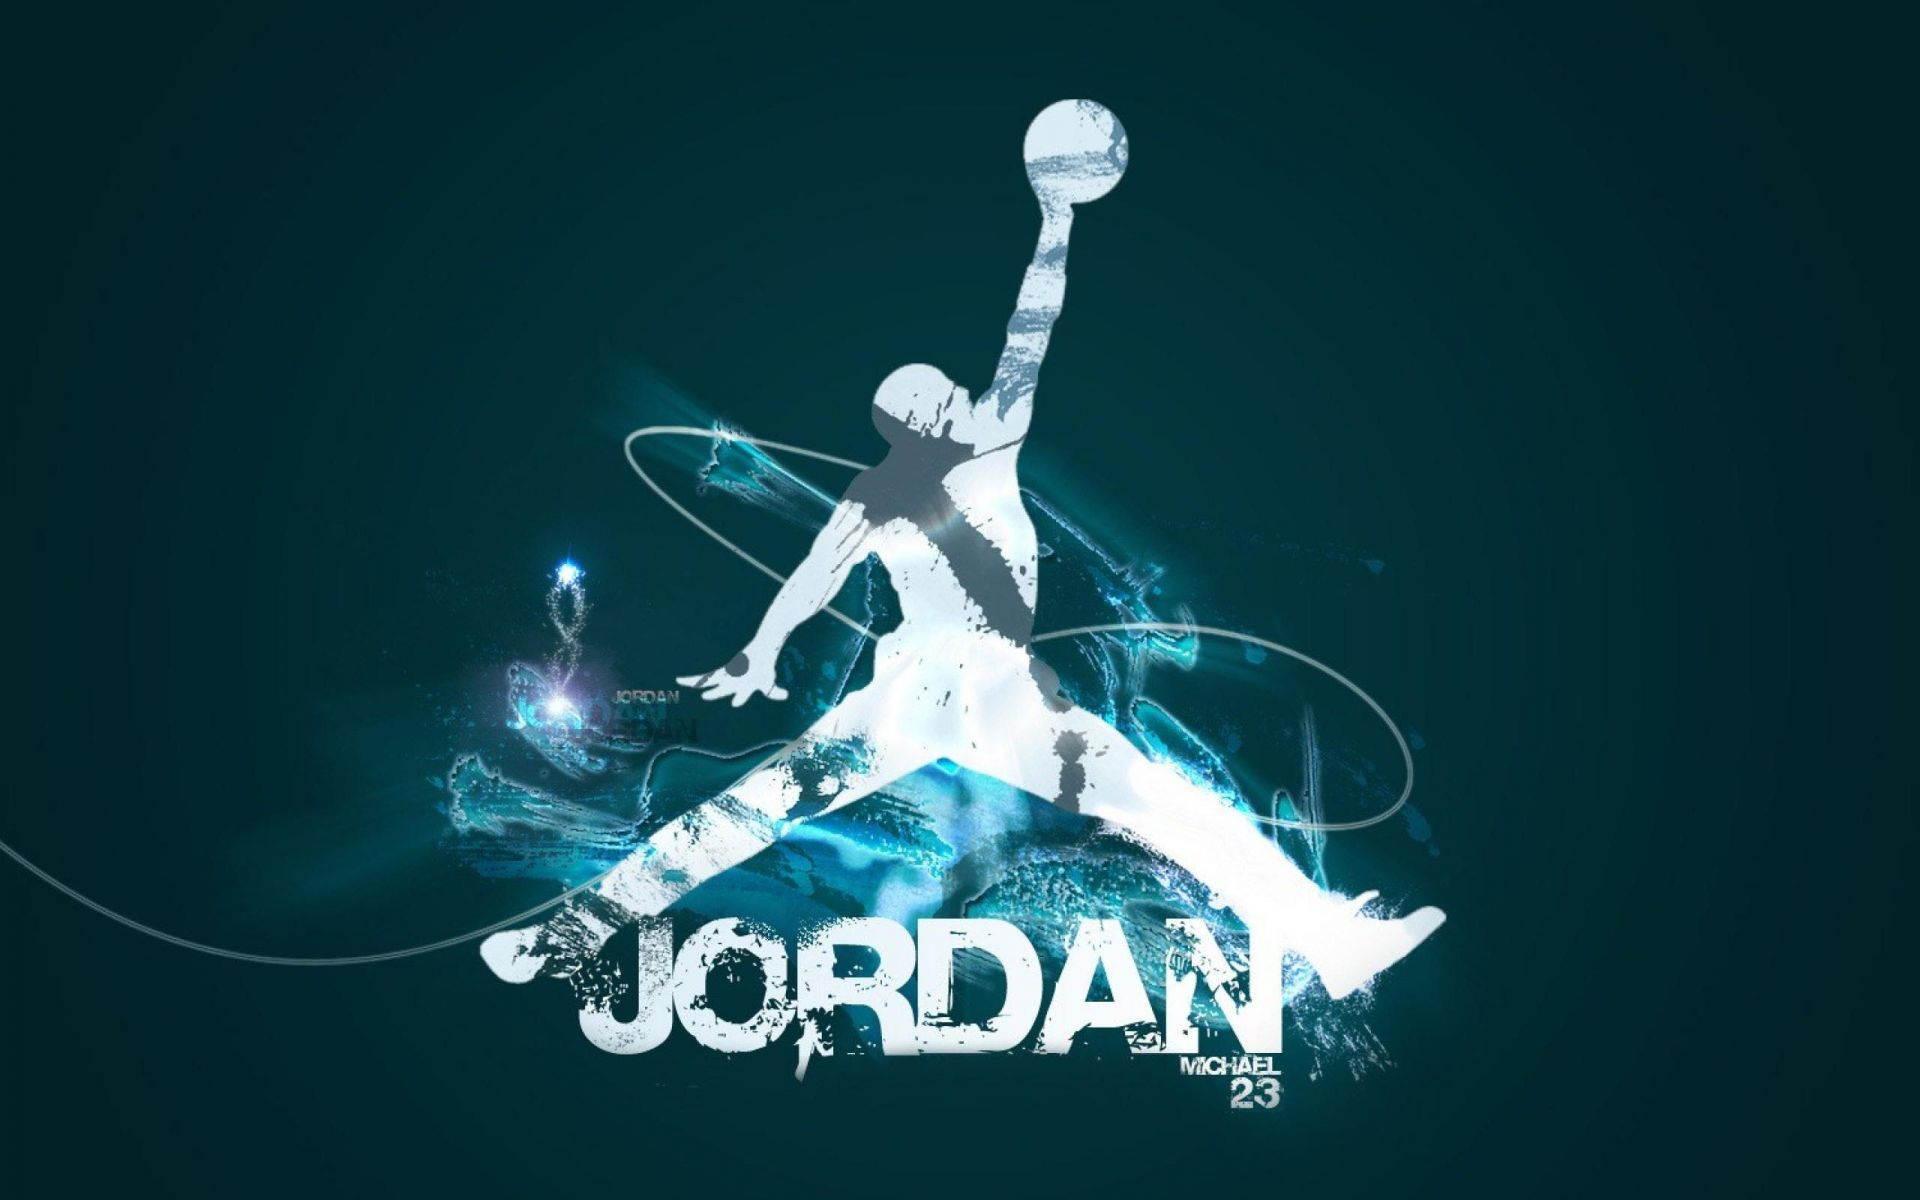 Wallpaper Be like Michael Jordan